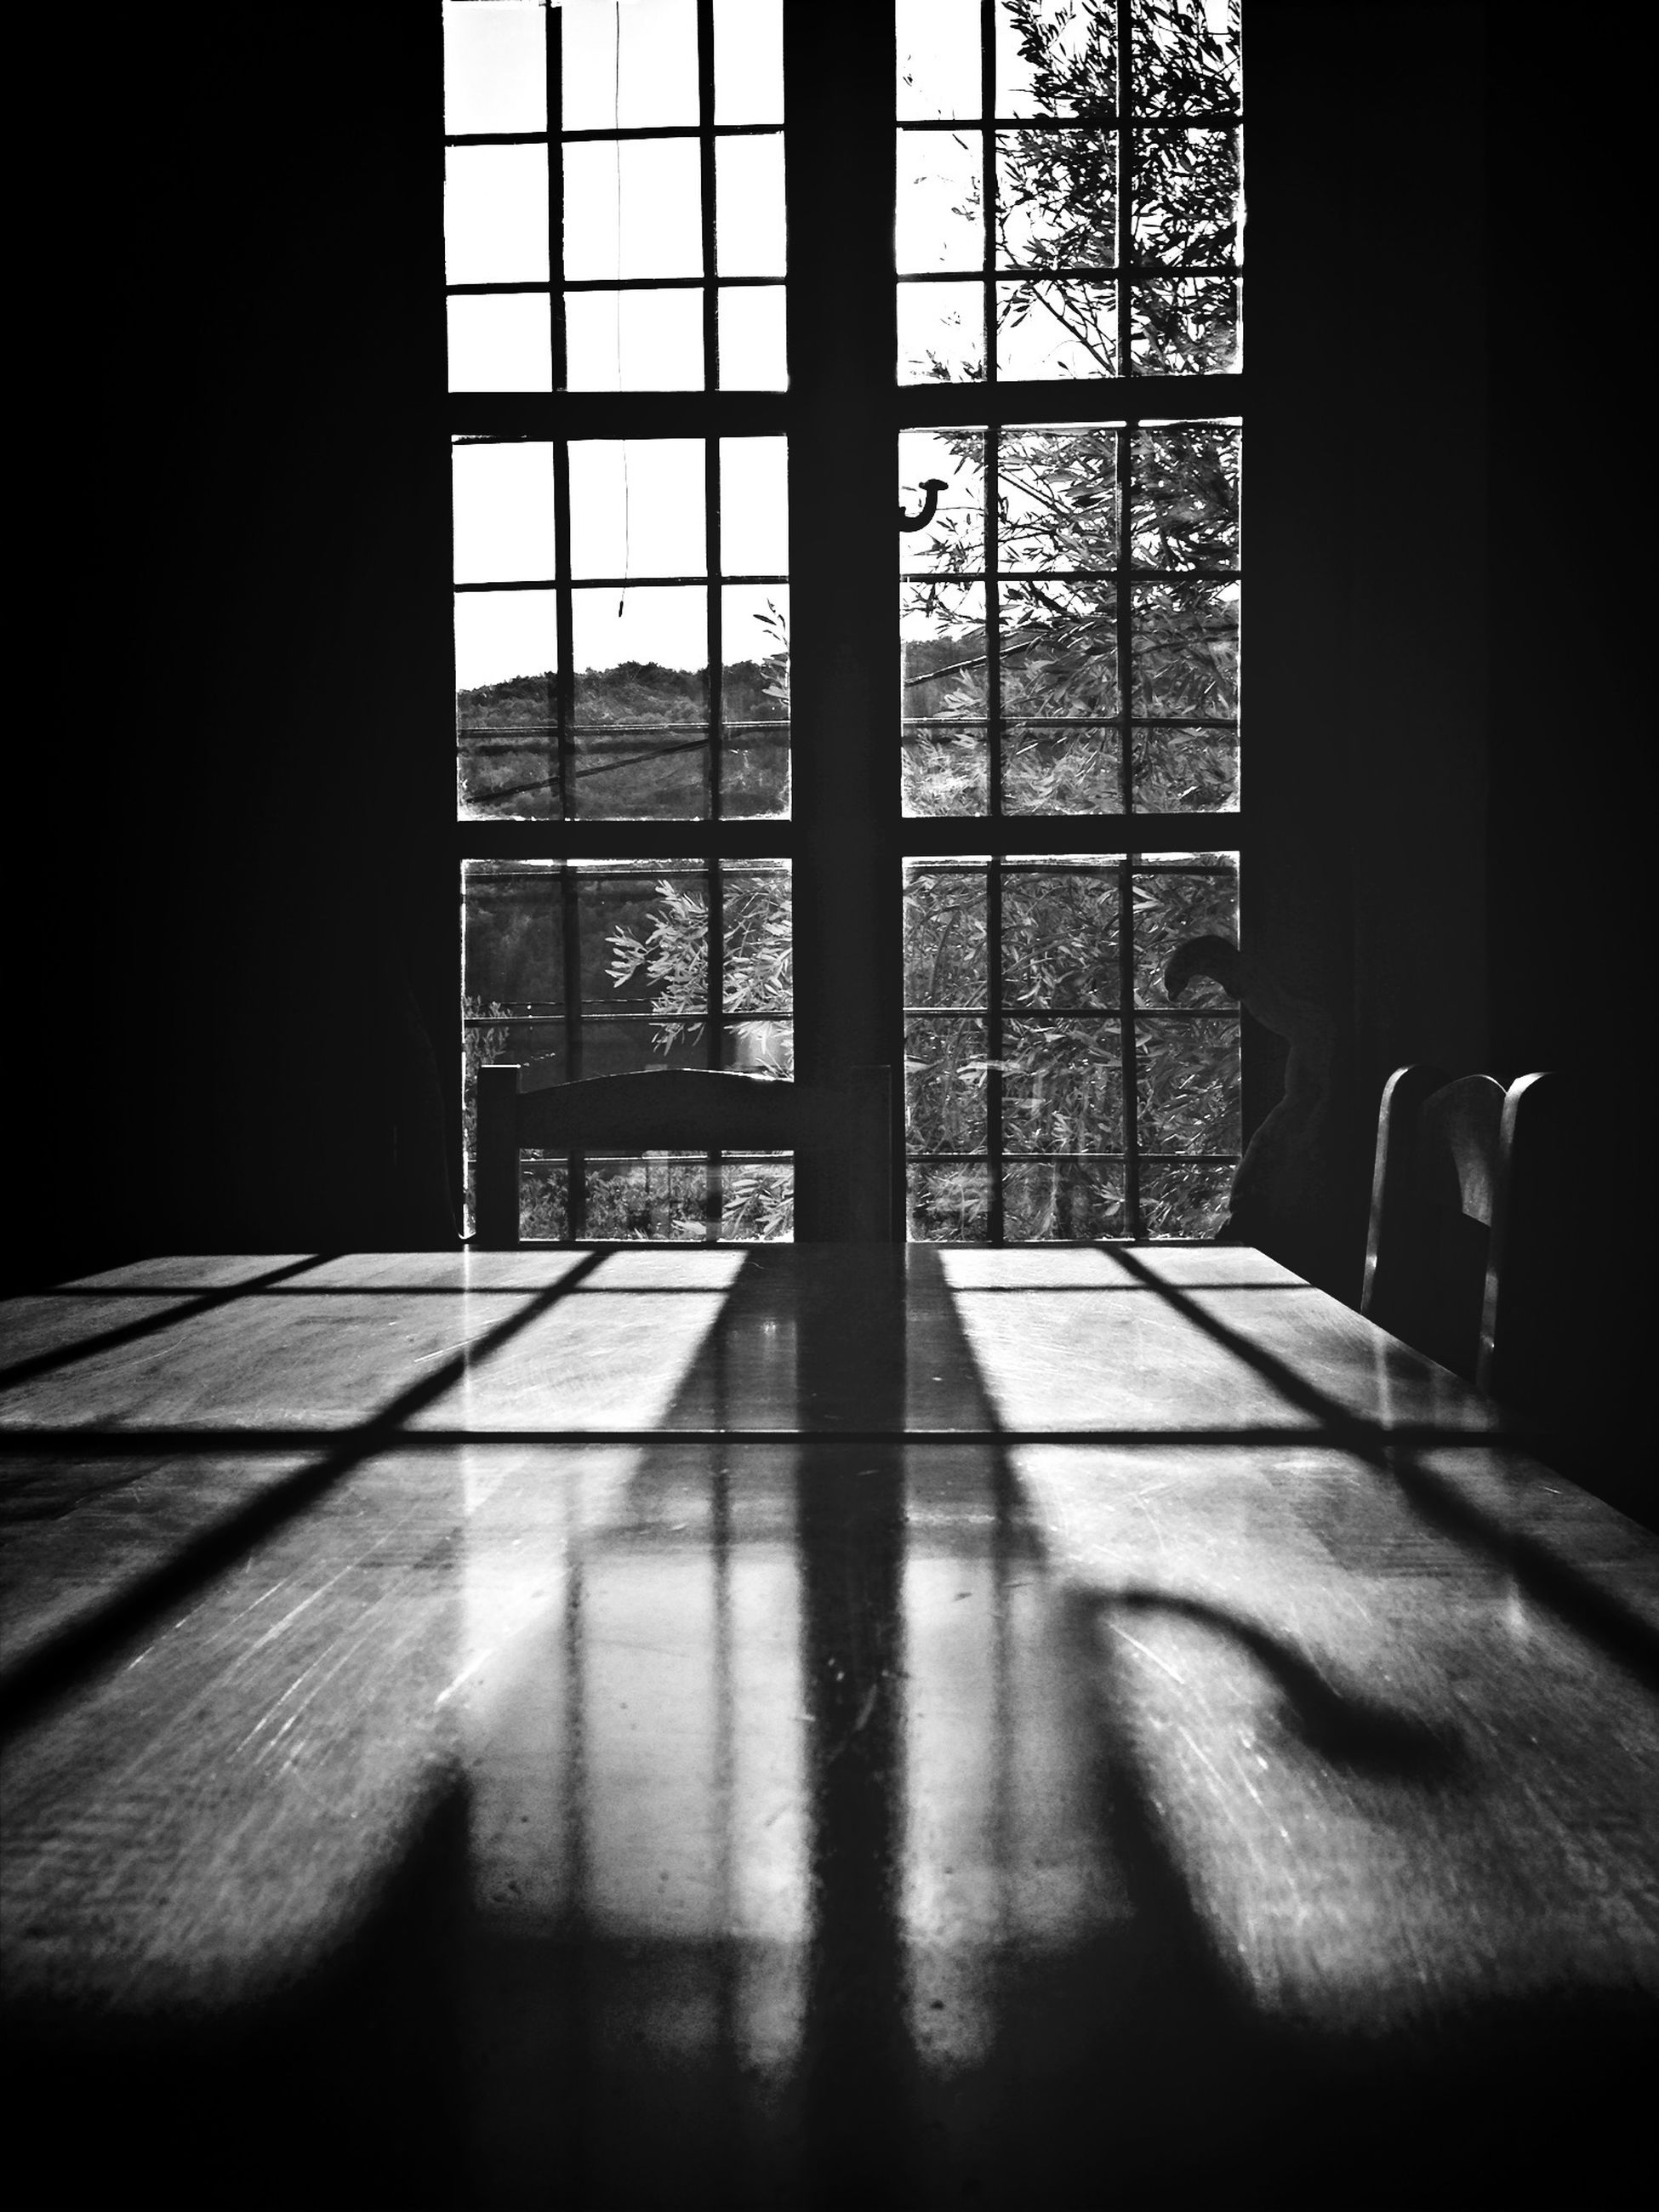 indoors, window, architecture, glass - material, home interior, built structure, transparent, table, shadow, sunlight, curtain, flooring, house, tiled floor, day, absence, chair, empty, window sill, building exterior